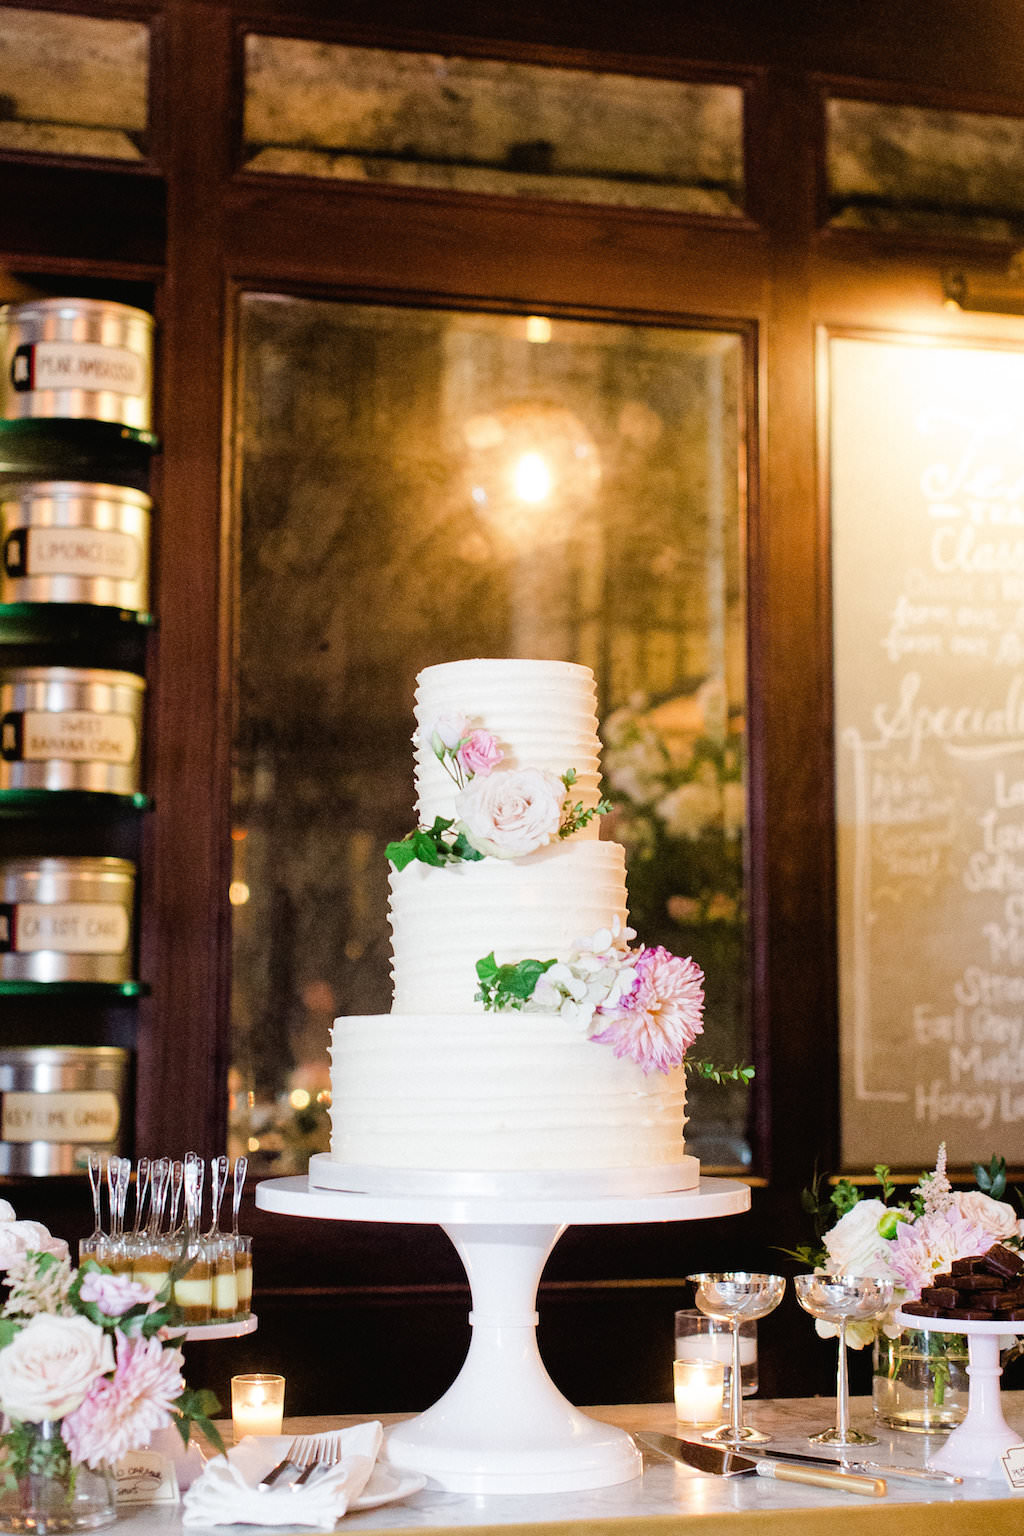 Ivory Garden Wedding Reception Dessert Table with Three Tier Round White Cake with Pink and White FLoral with Greenery on Round White Marble Cake Stand